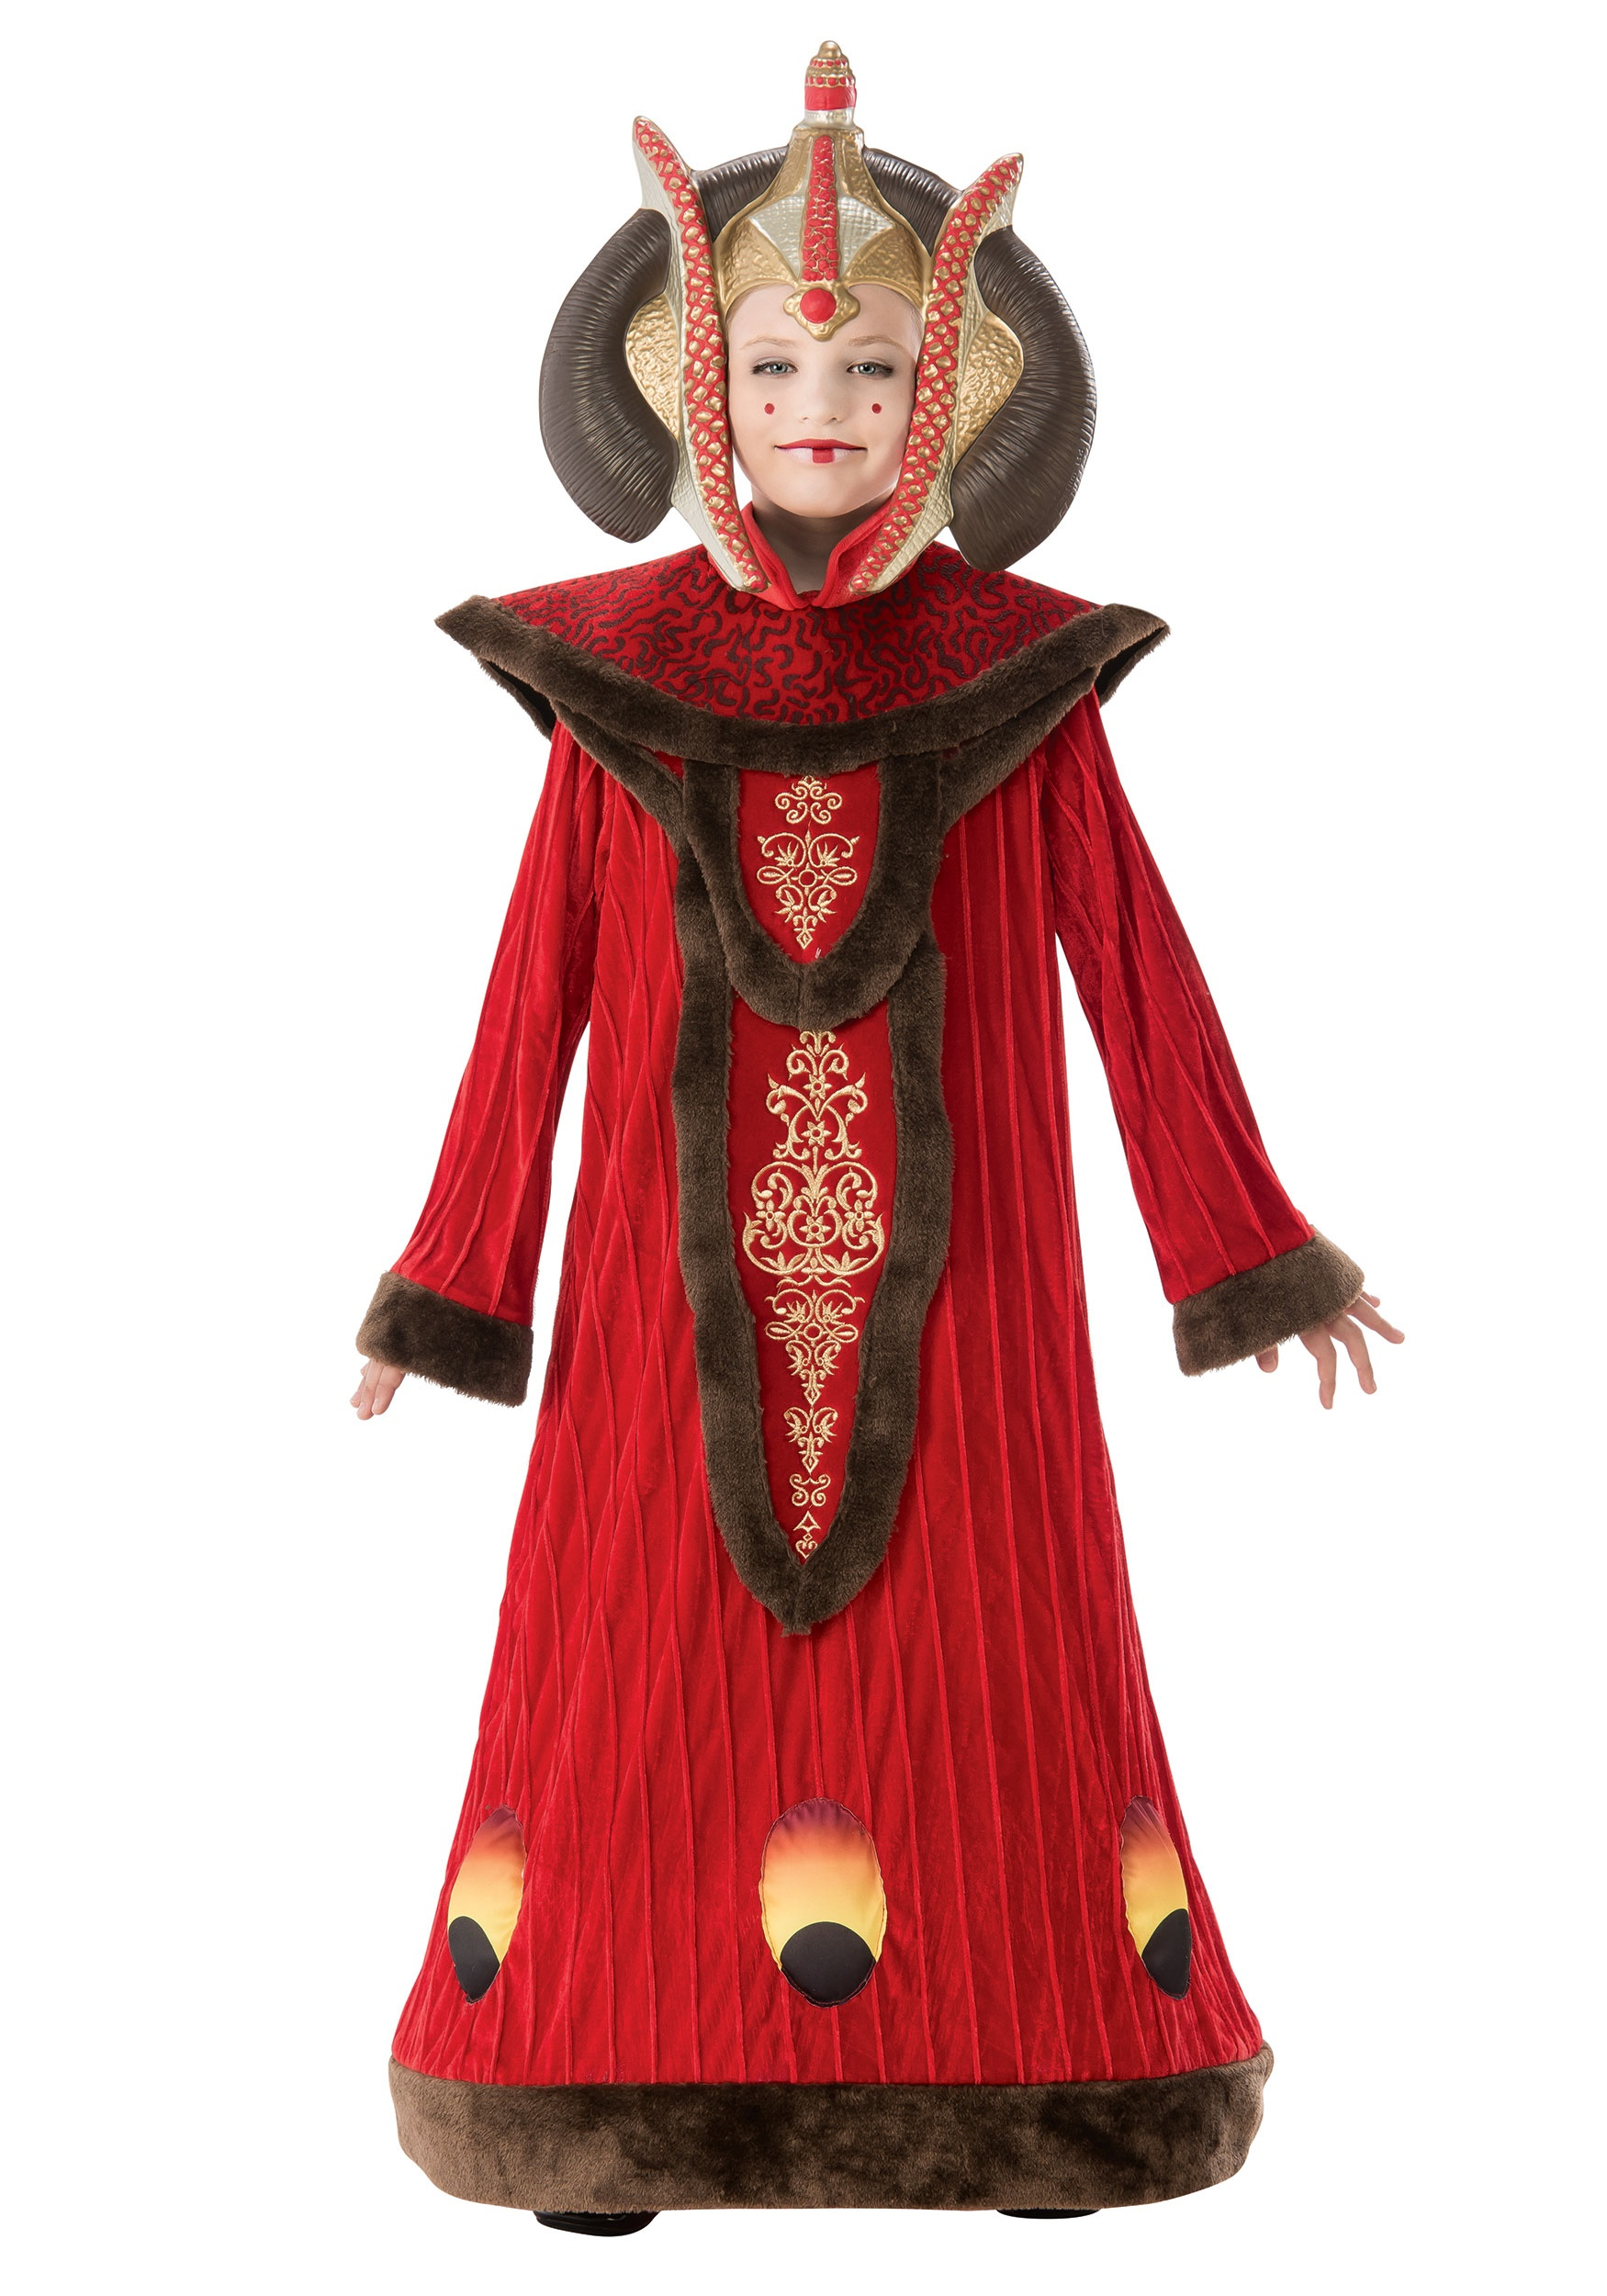 INOpets.com Anything for Pets Parents & Their Pets Star Wars Queen Amidala Fancy Dress Costume for Girls